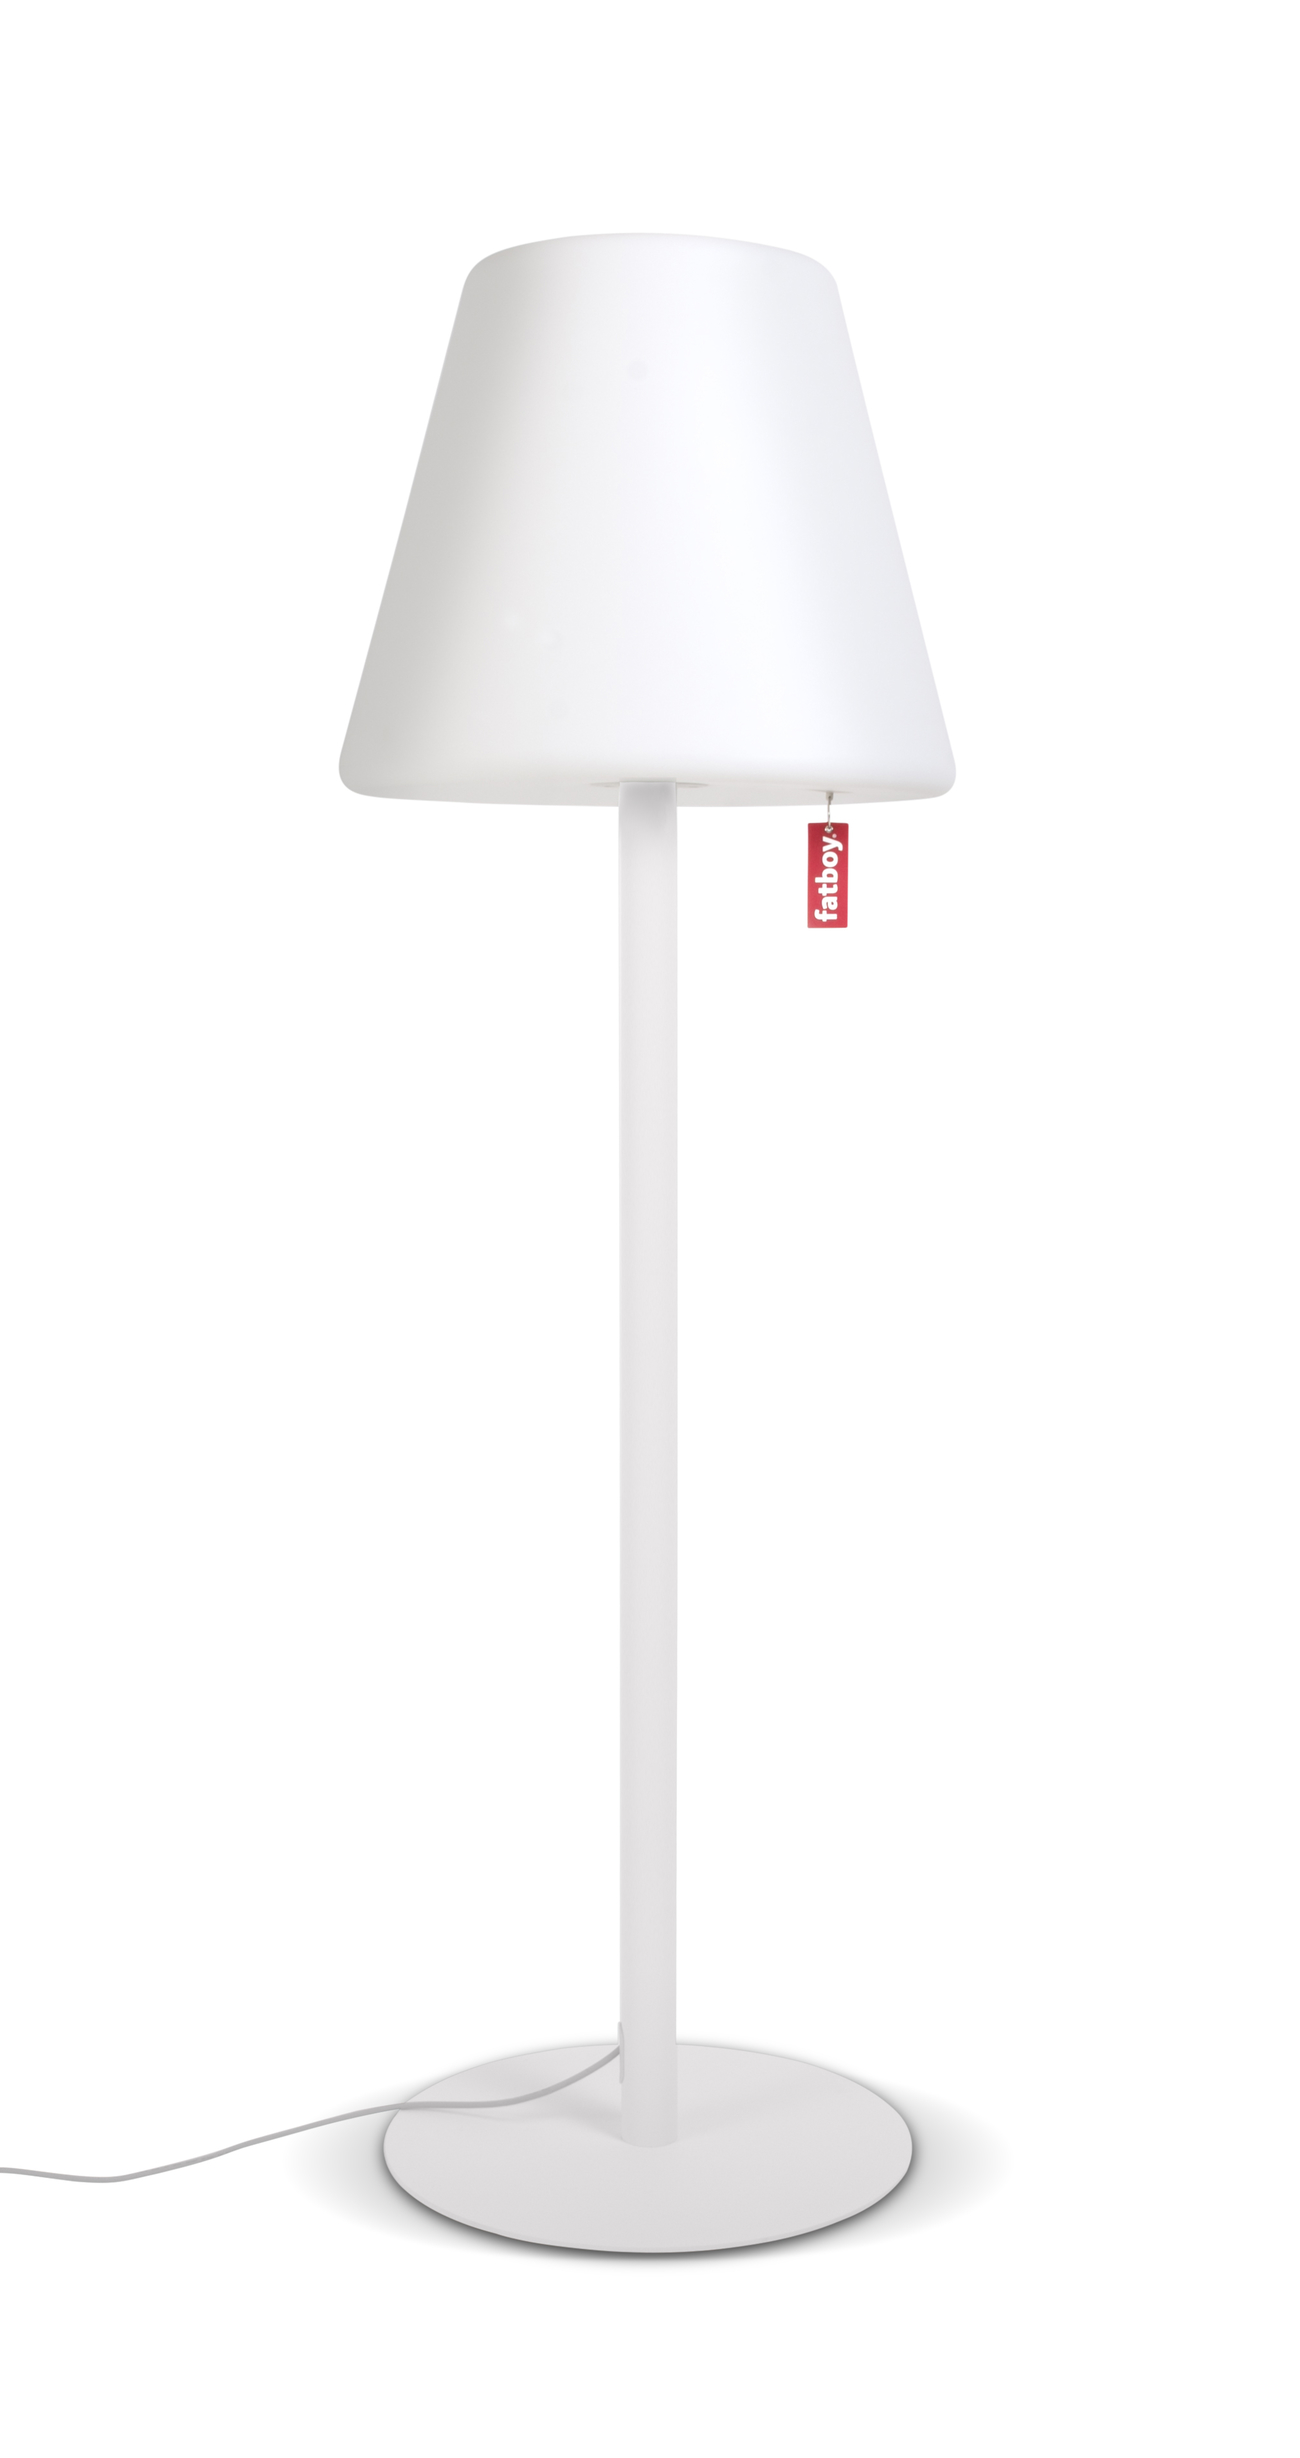 Fatboy Edison the Giant vloerlamp-Wit